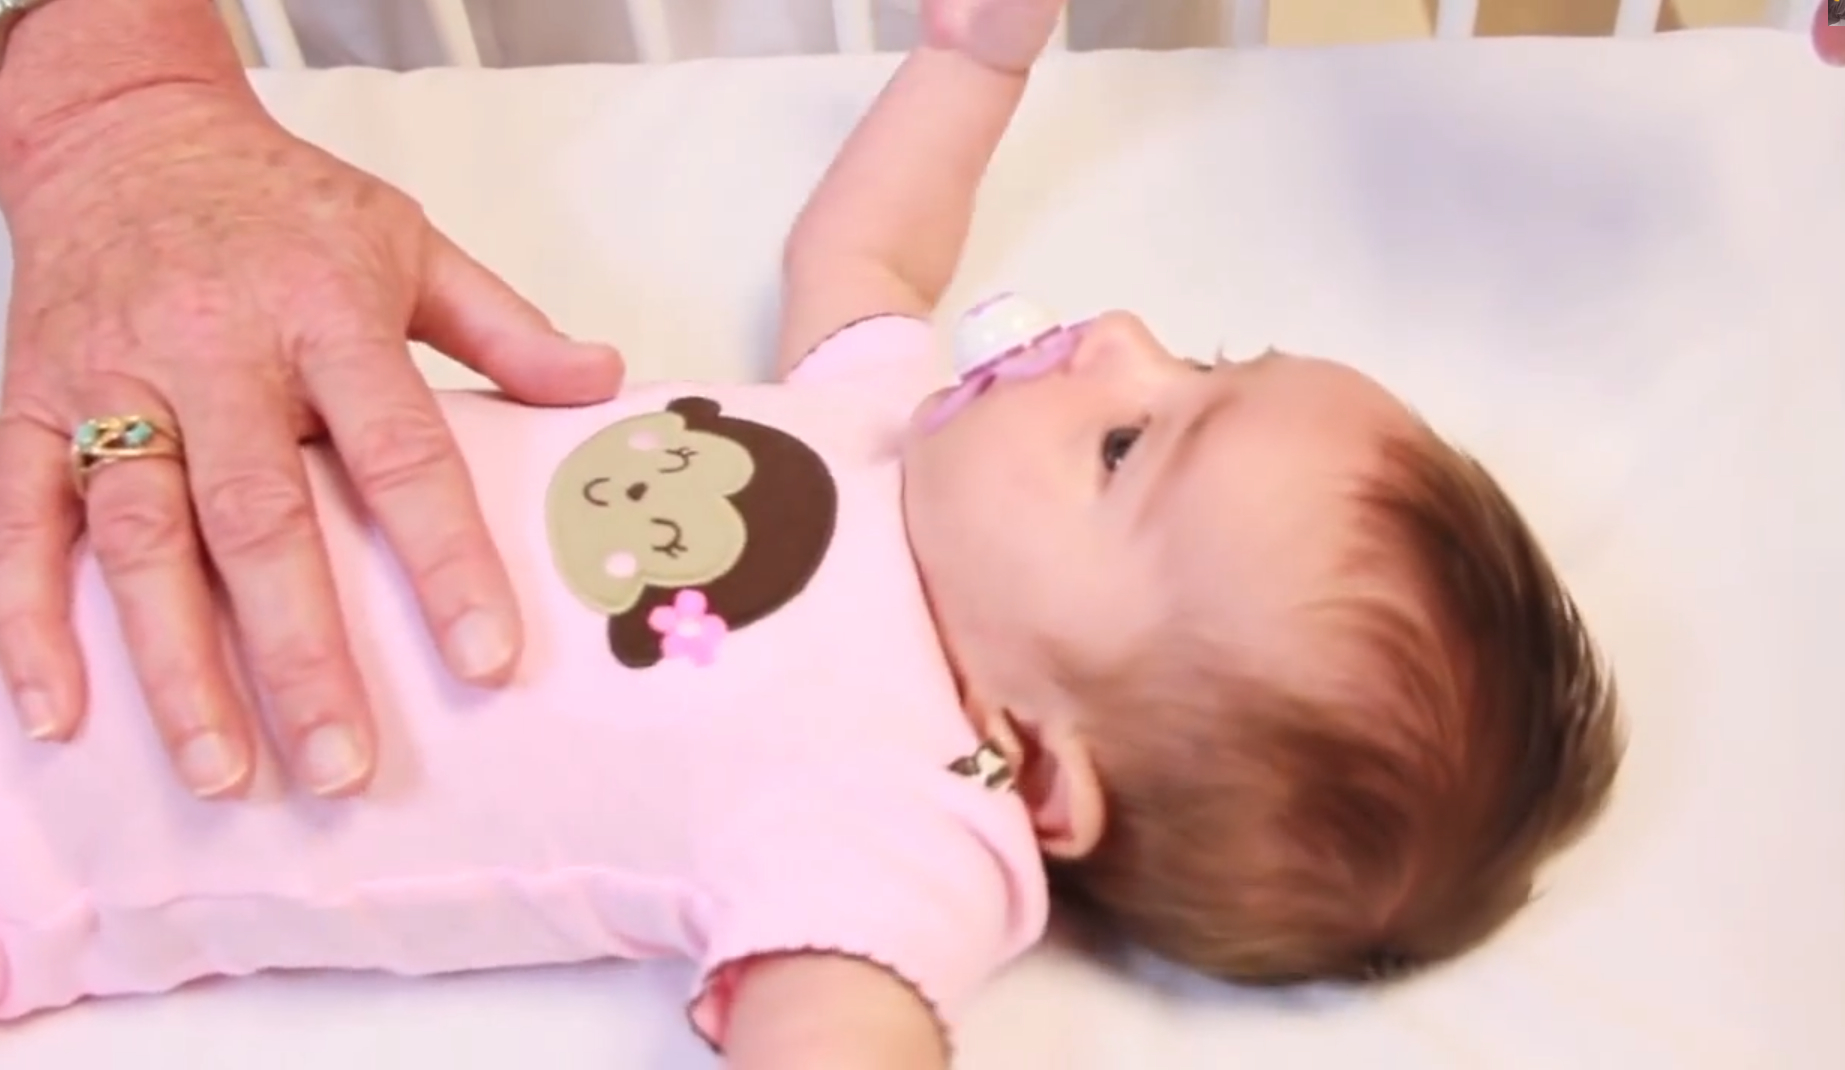 Pertussis (Whooping Cough): Symptoms, Treatment & When to